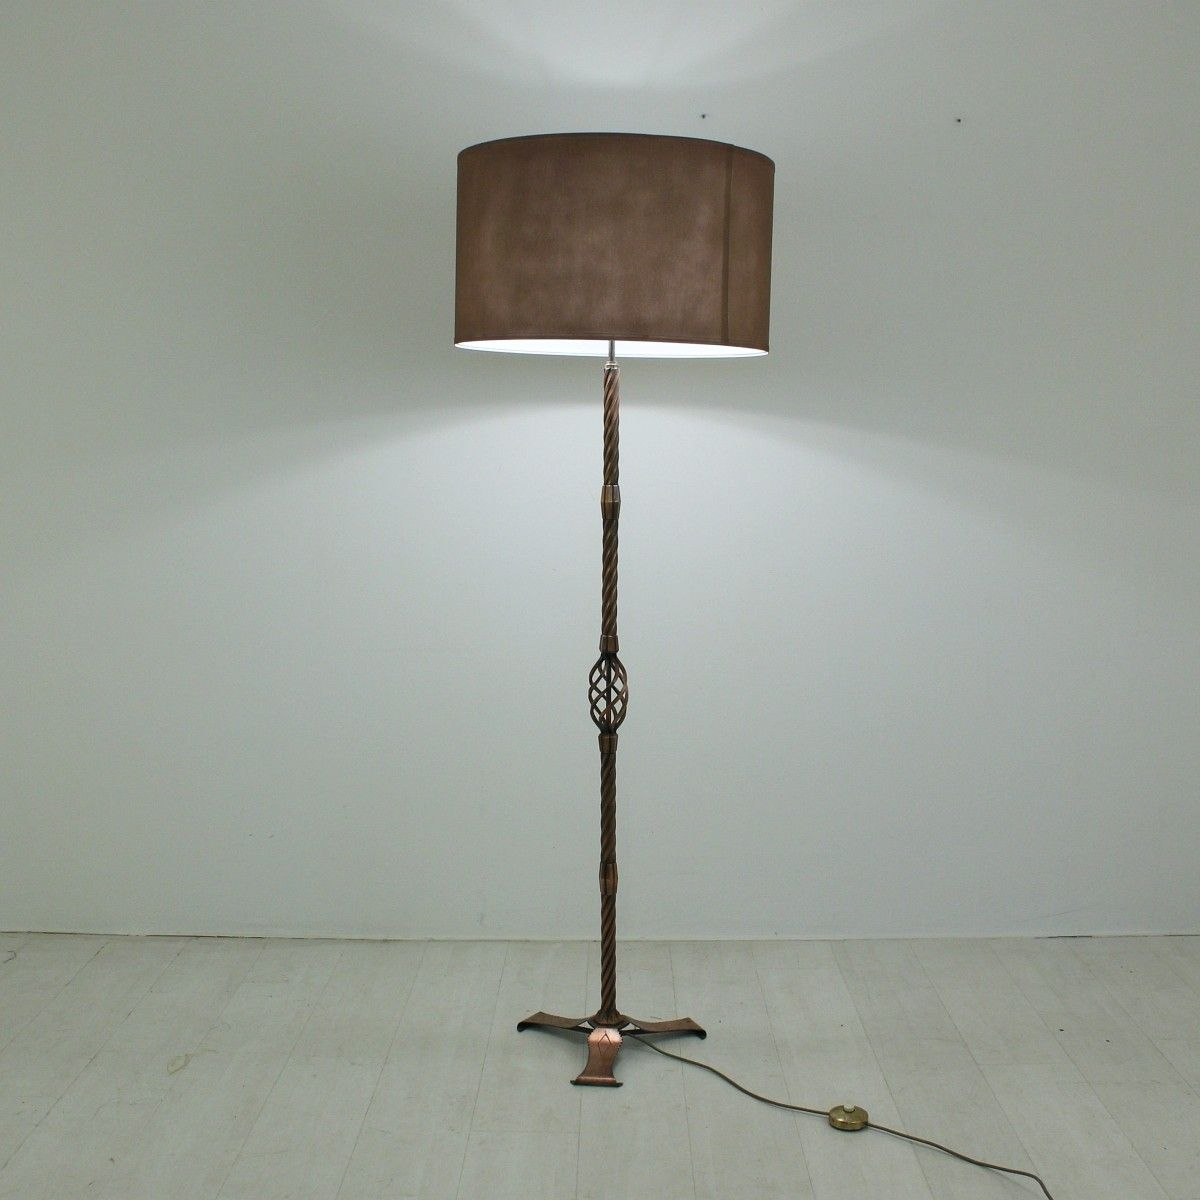 Copper Floor Lamp, 1930s for sale at Pamono